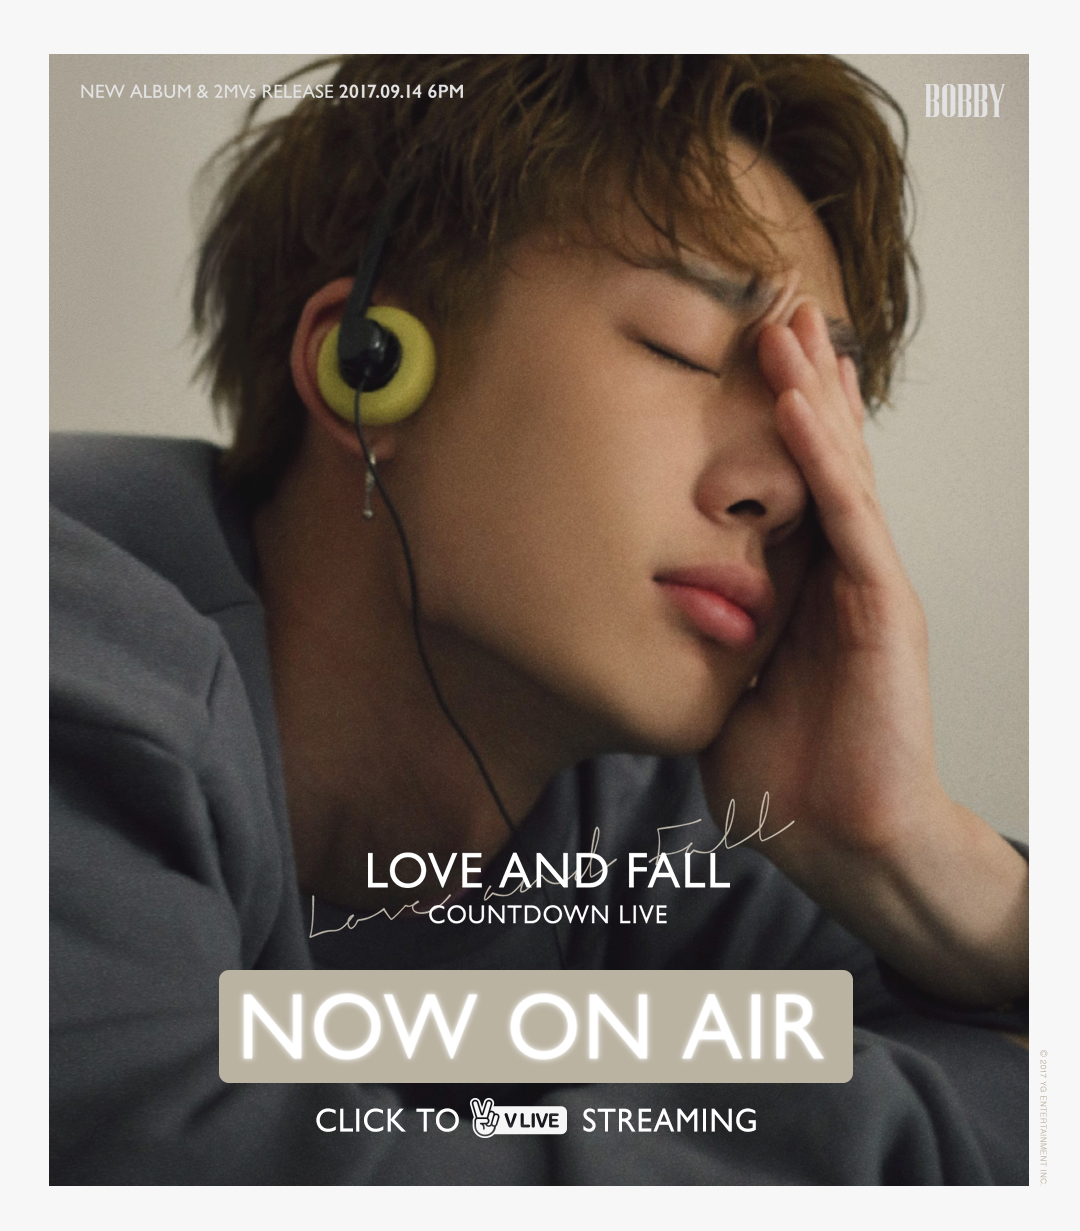 yg life bobby love and fall countdown live